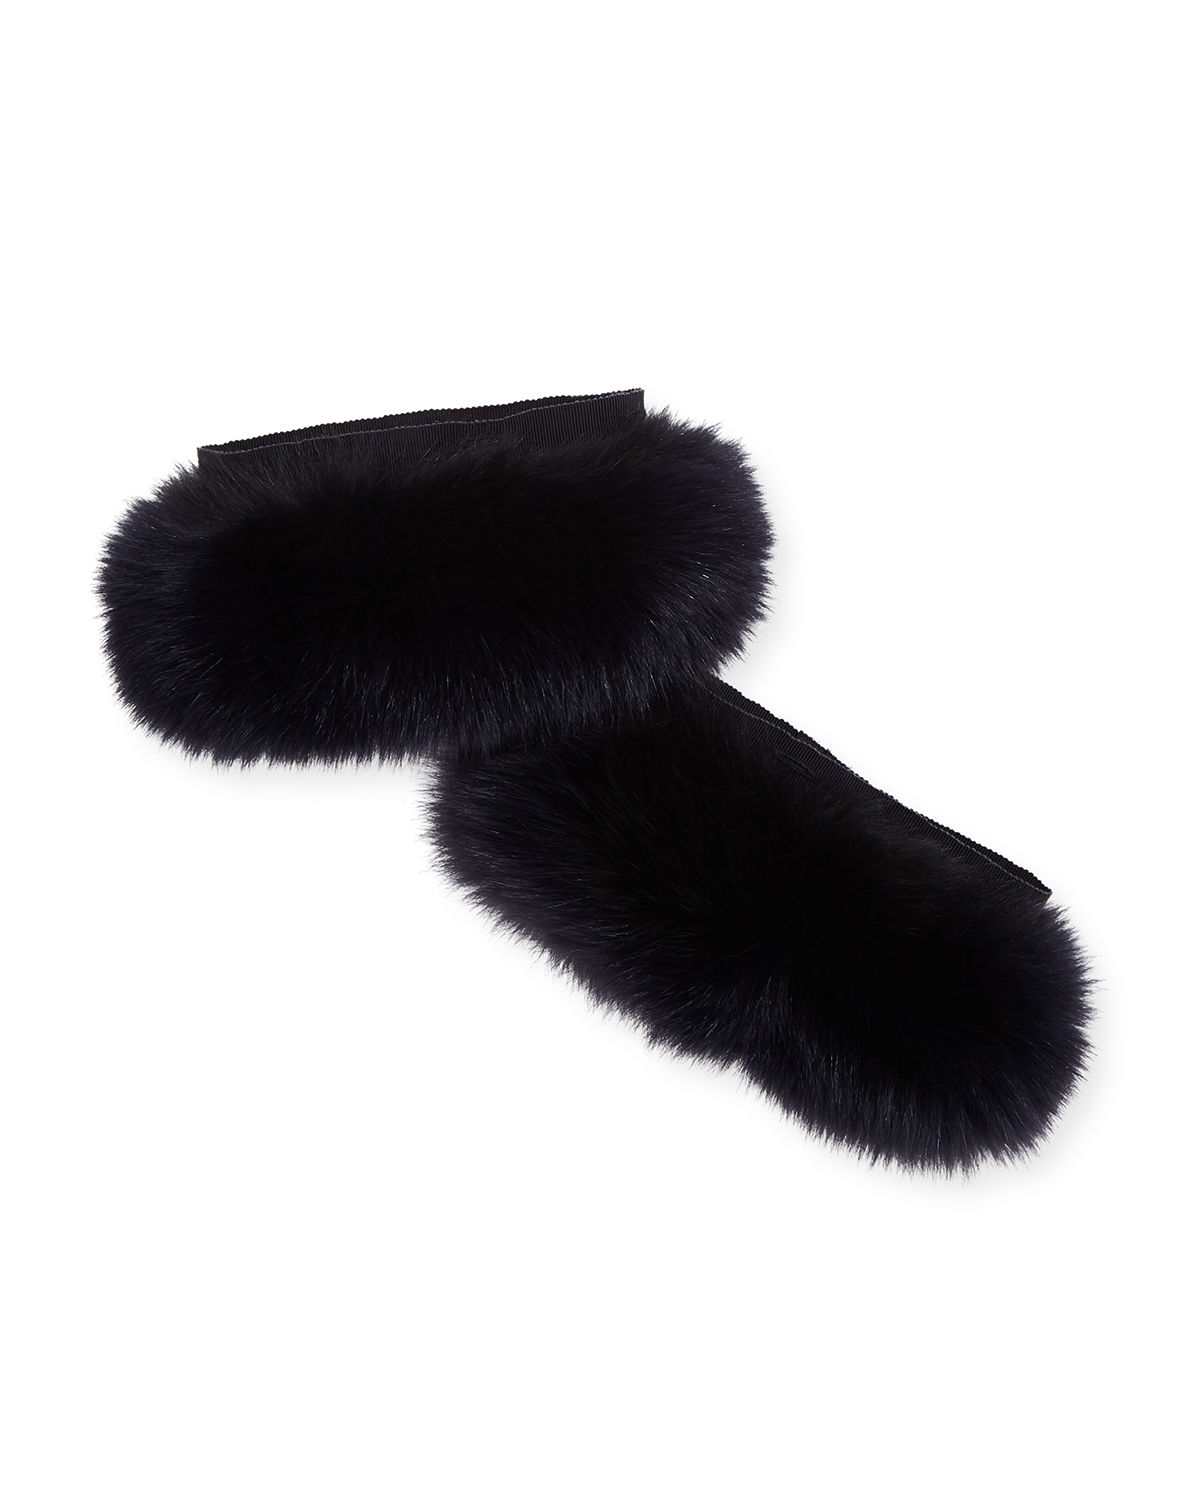 Here is the Cube Collection Susanna Detachable Fur Cuffs